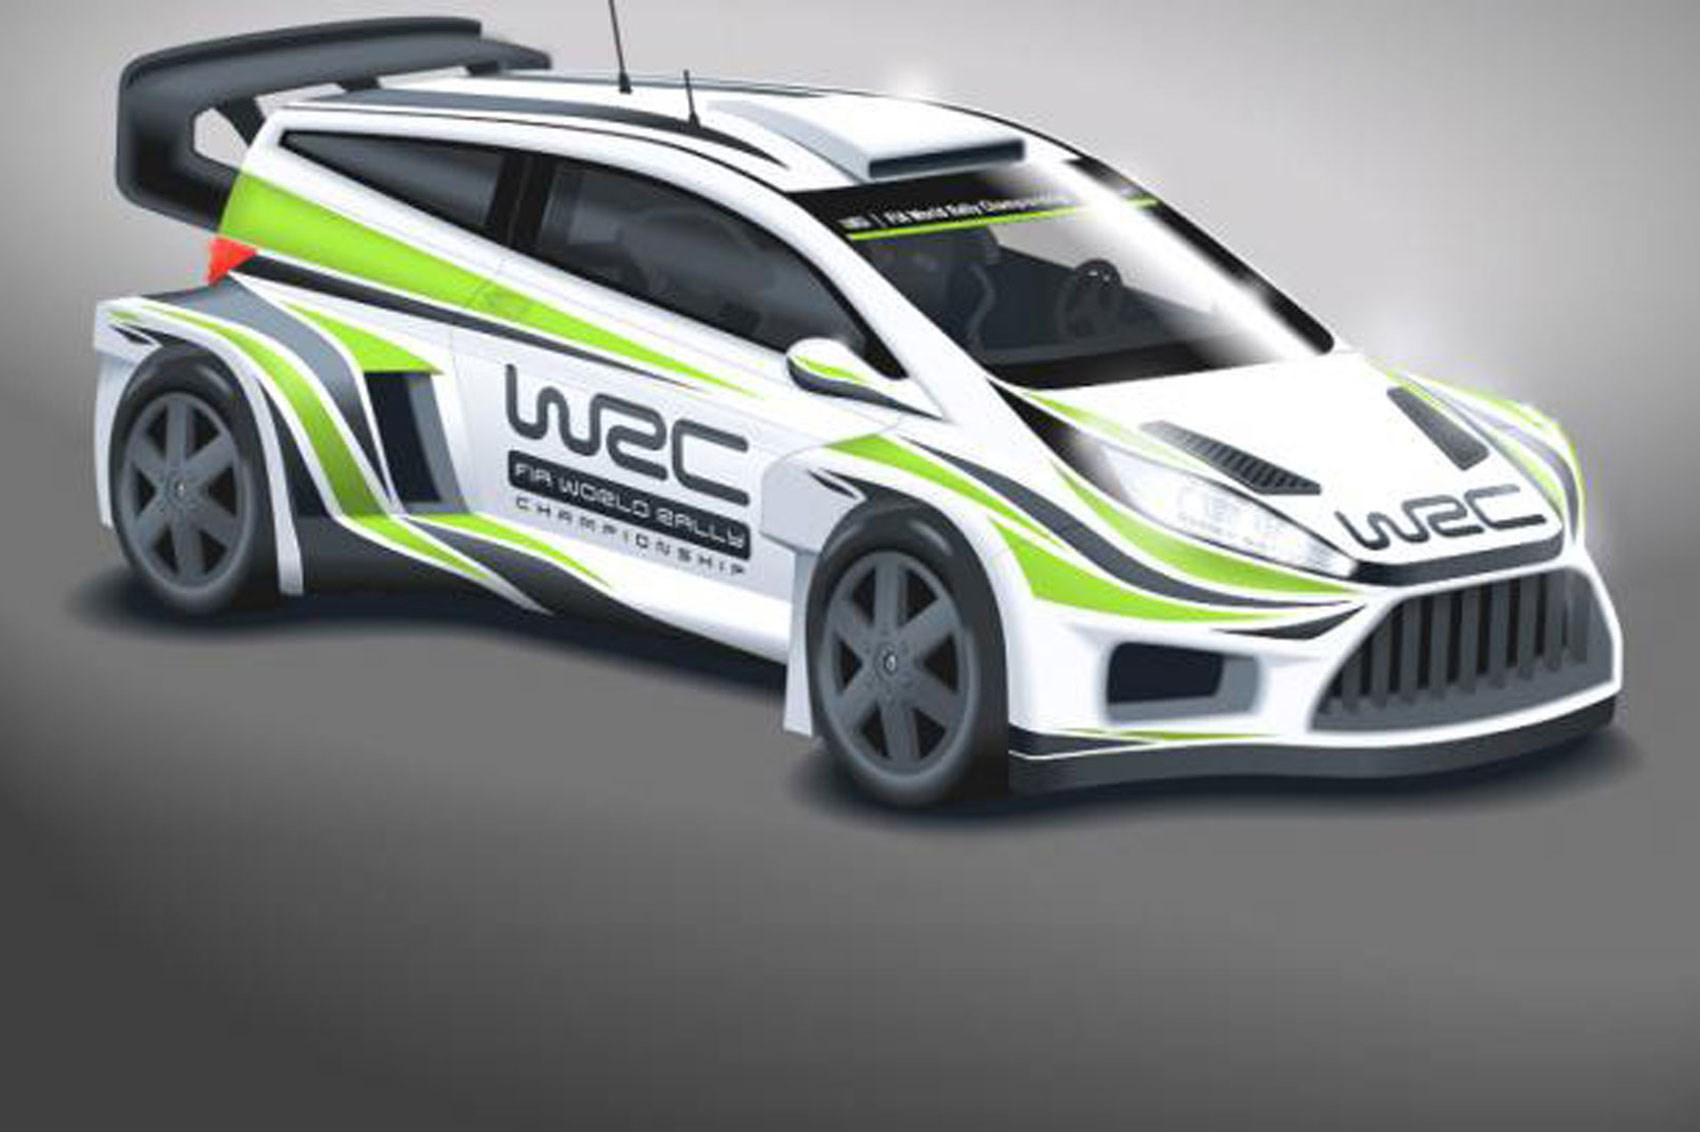 Ultrablogus  Unique Wild New Look For Wrc Cars In  By Car Magazine With Goodlooking Wrc Cars Will Get Wider Bodies Bigger Wings And More Power For  With Comely  Dodge Ram  Interior Also How To Remove Makeup Stains From Car Interior In Addition  Chevy Tahoe Interior Pictures And Jeep Grand Cherokee  Interior As Well As Beetle Volkswagen Interior Additionally Lexus Ls Interior From Carmagazinecouk With Ultrablogus  Goodlooking Wild New Look For Wrc Cars In  By Car Magazine With Comely Wrc Cars Will Get Wider Bodies Bigger Wings And More Power For  And Unique  Dodge Ram  Interior Also How To Remove Makeup Stains From Car Interior In Addition  Chevy Tahoe Interior Pictures From Carmagazinecouk